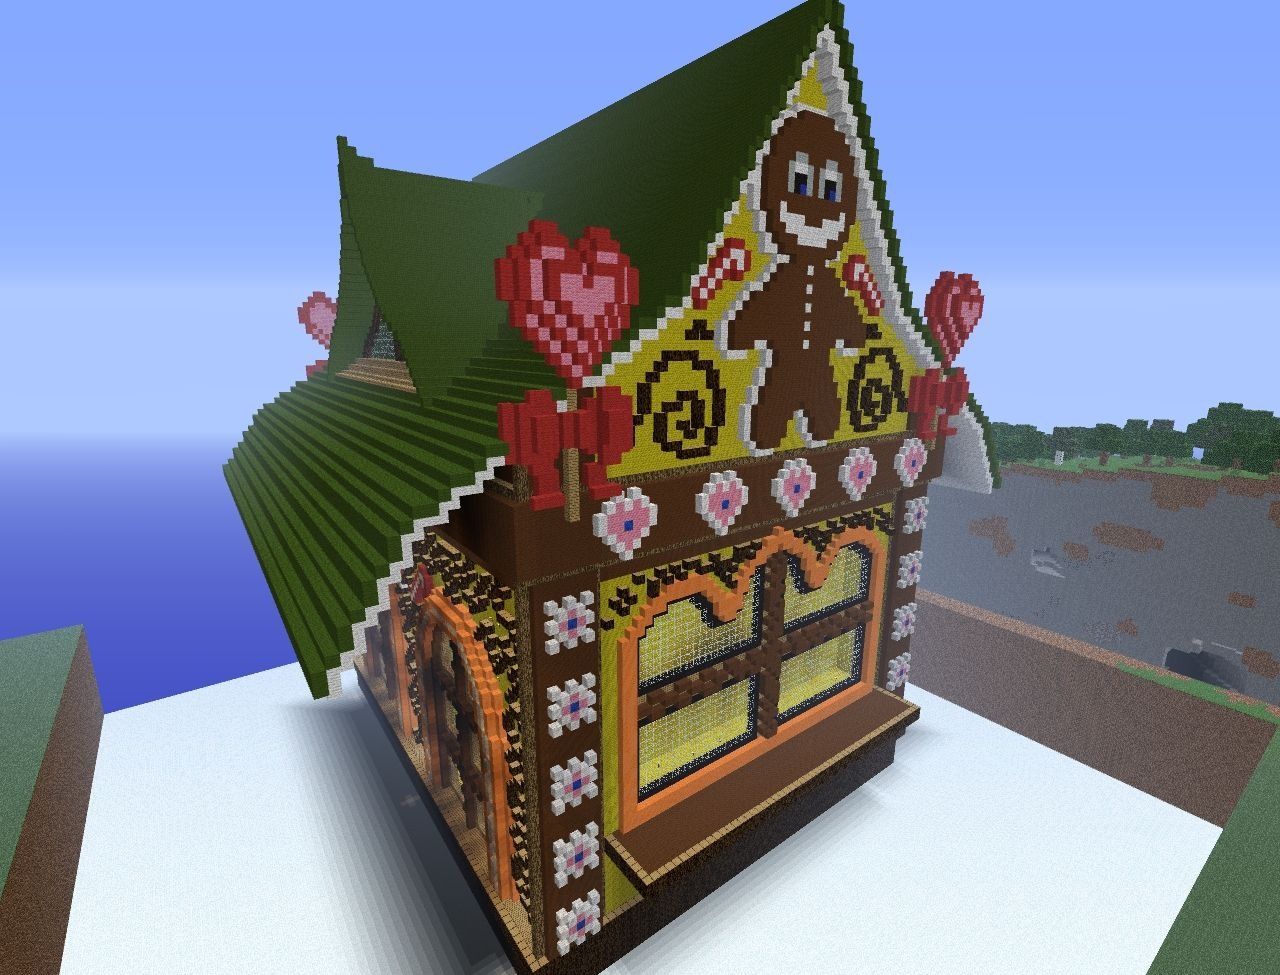 Gigantic gingerbread house minecraft project for How do you make a gingerbread house